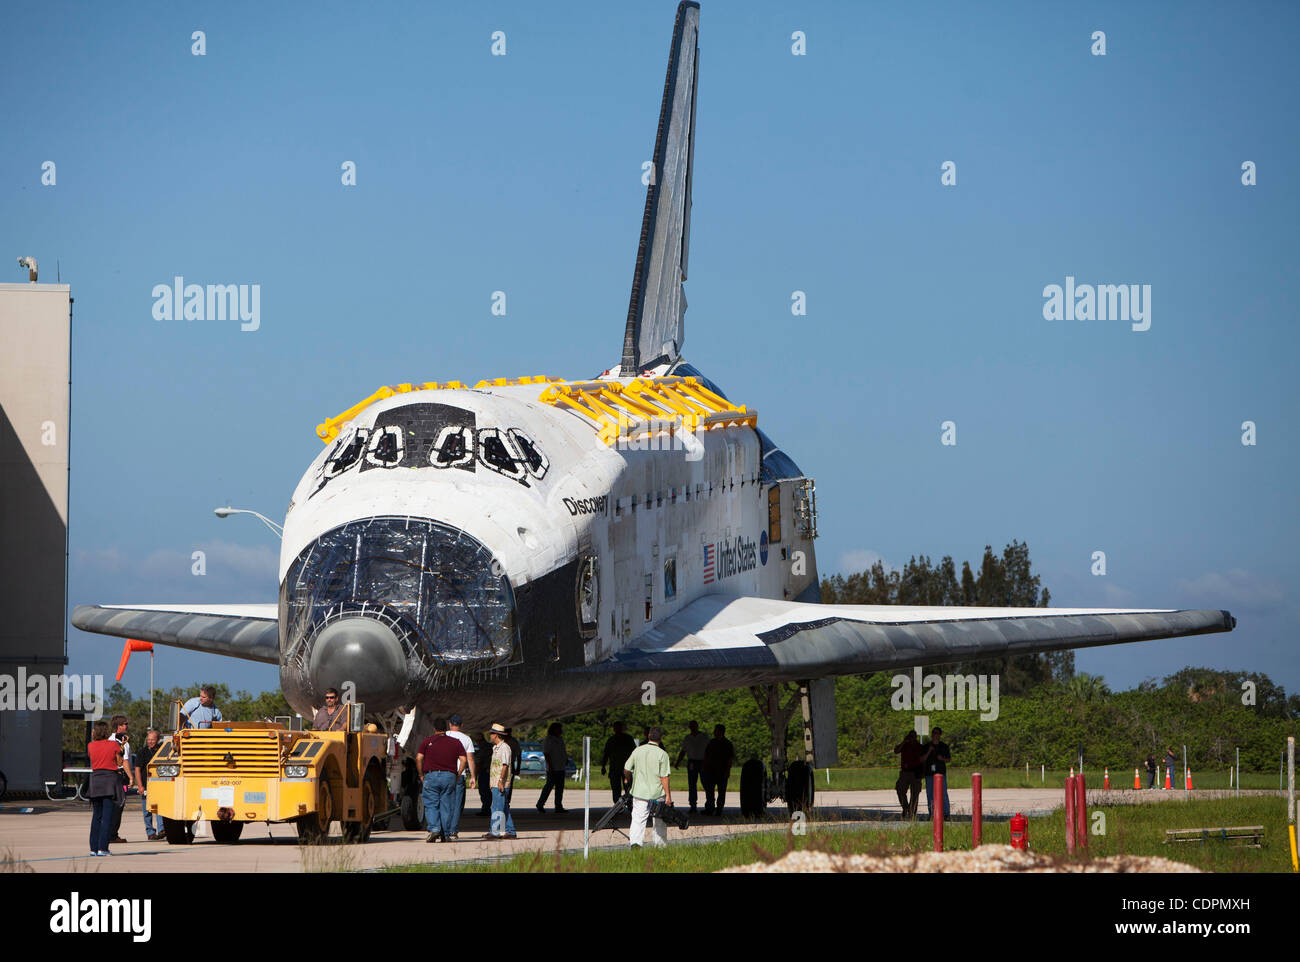 us space shuttle discovery - photo #14